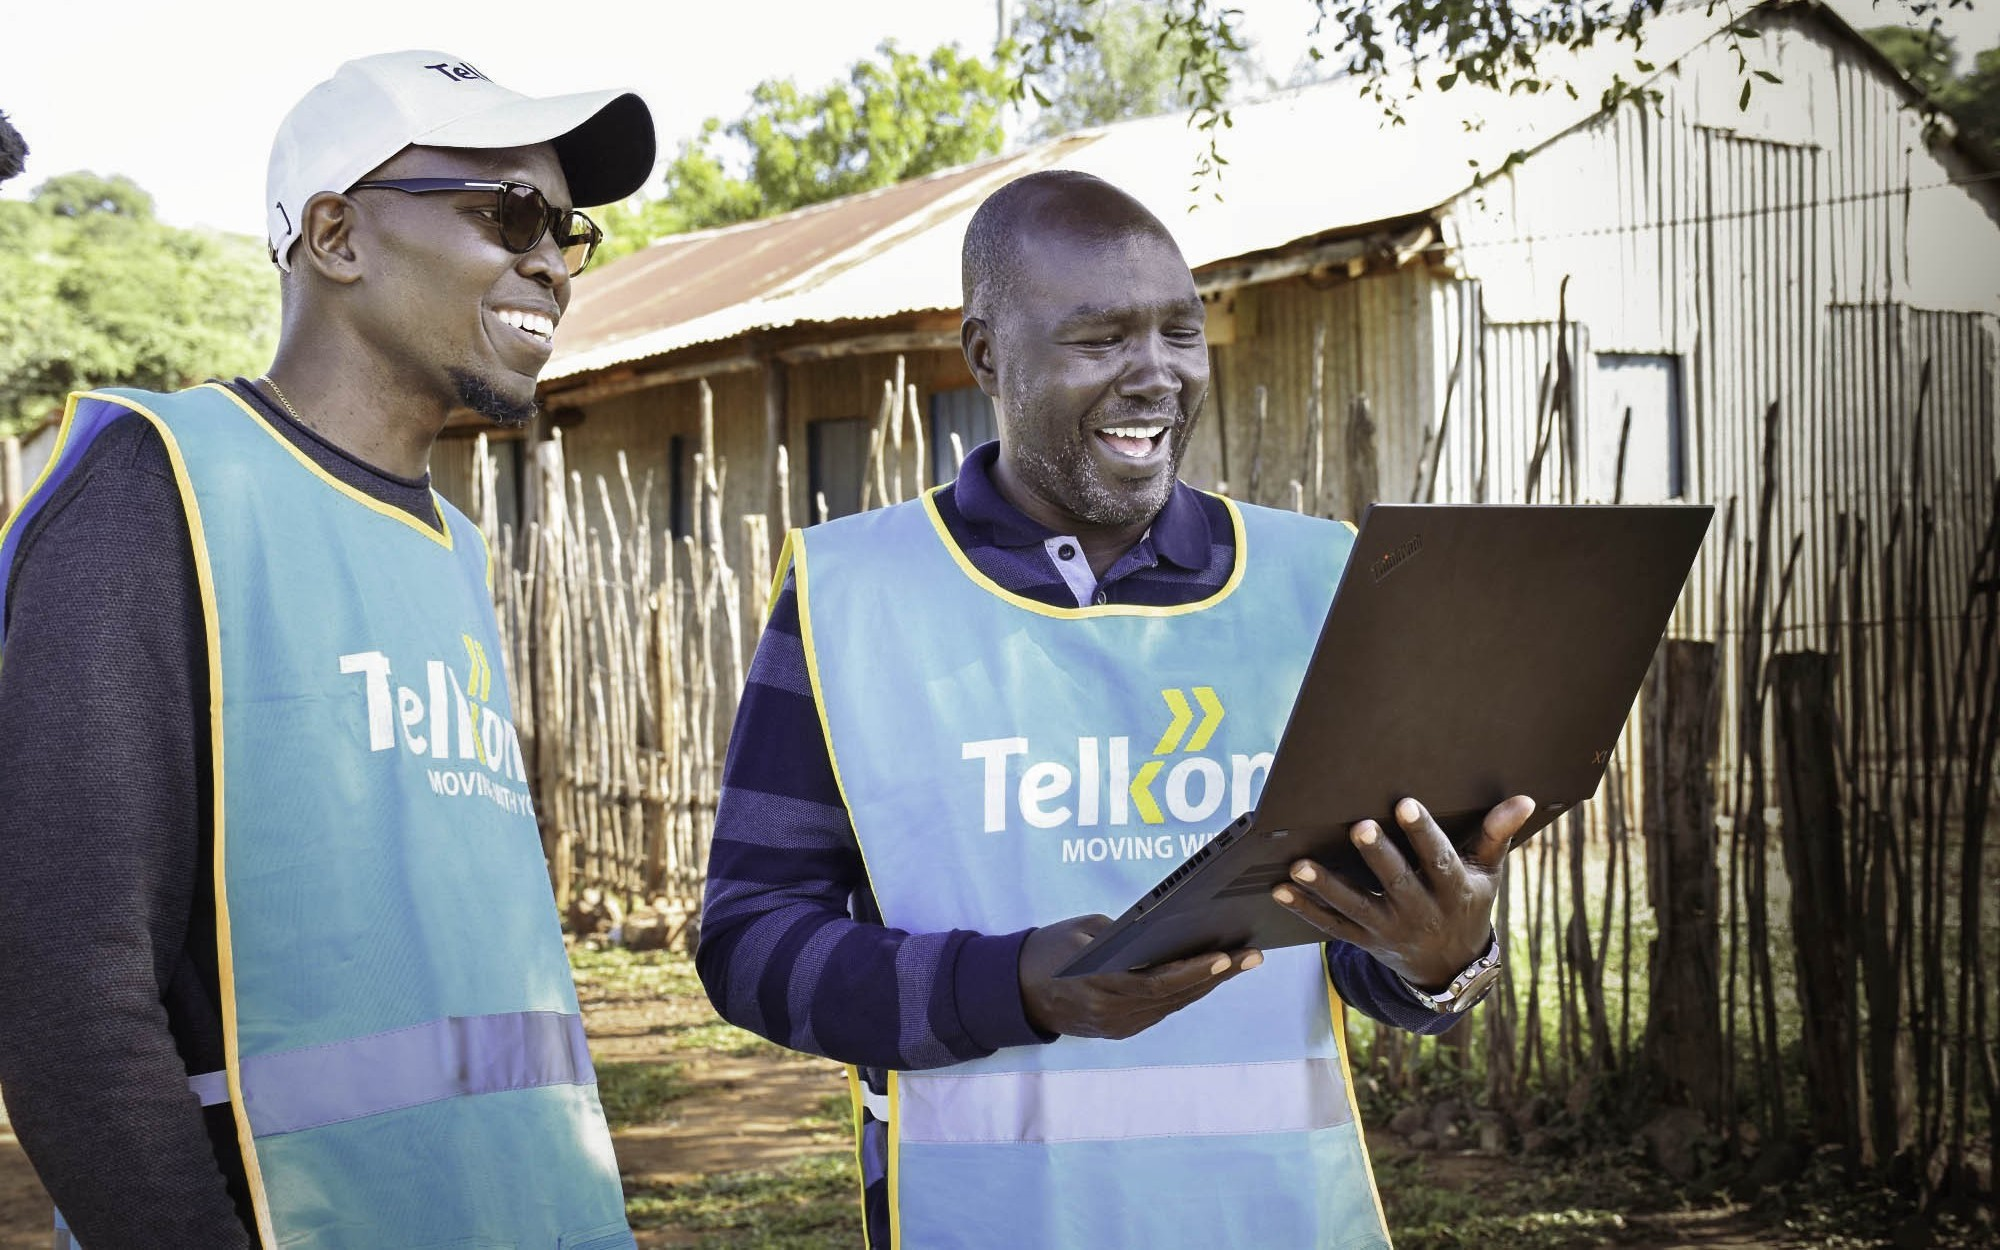 Loon's balloon-powered internet service is live in Kenya